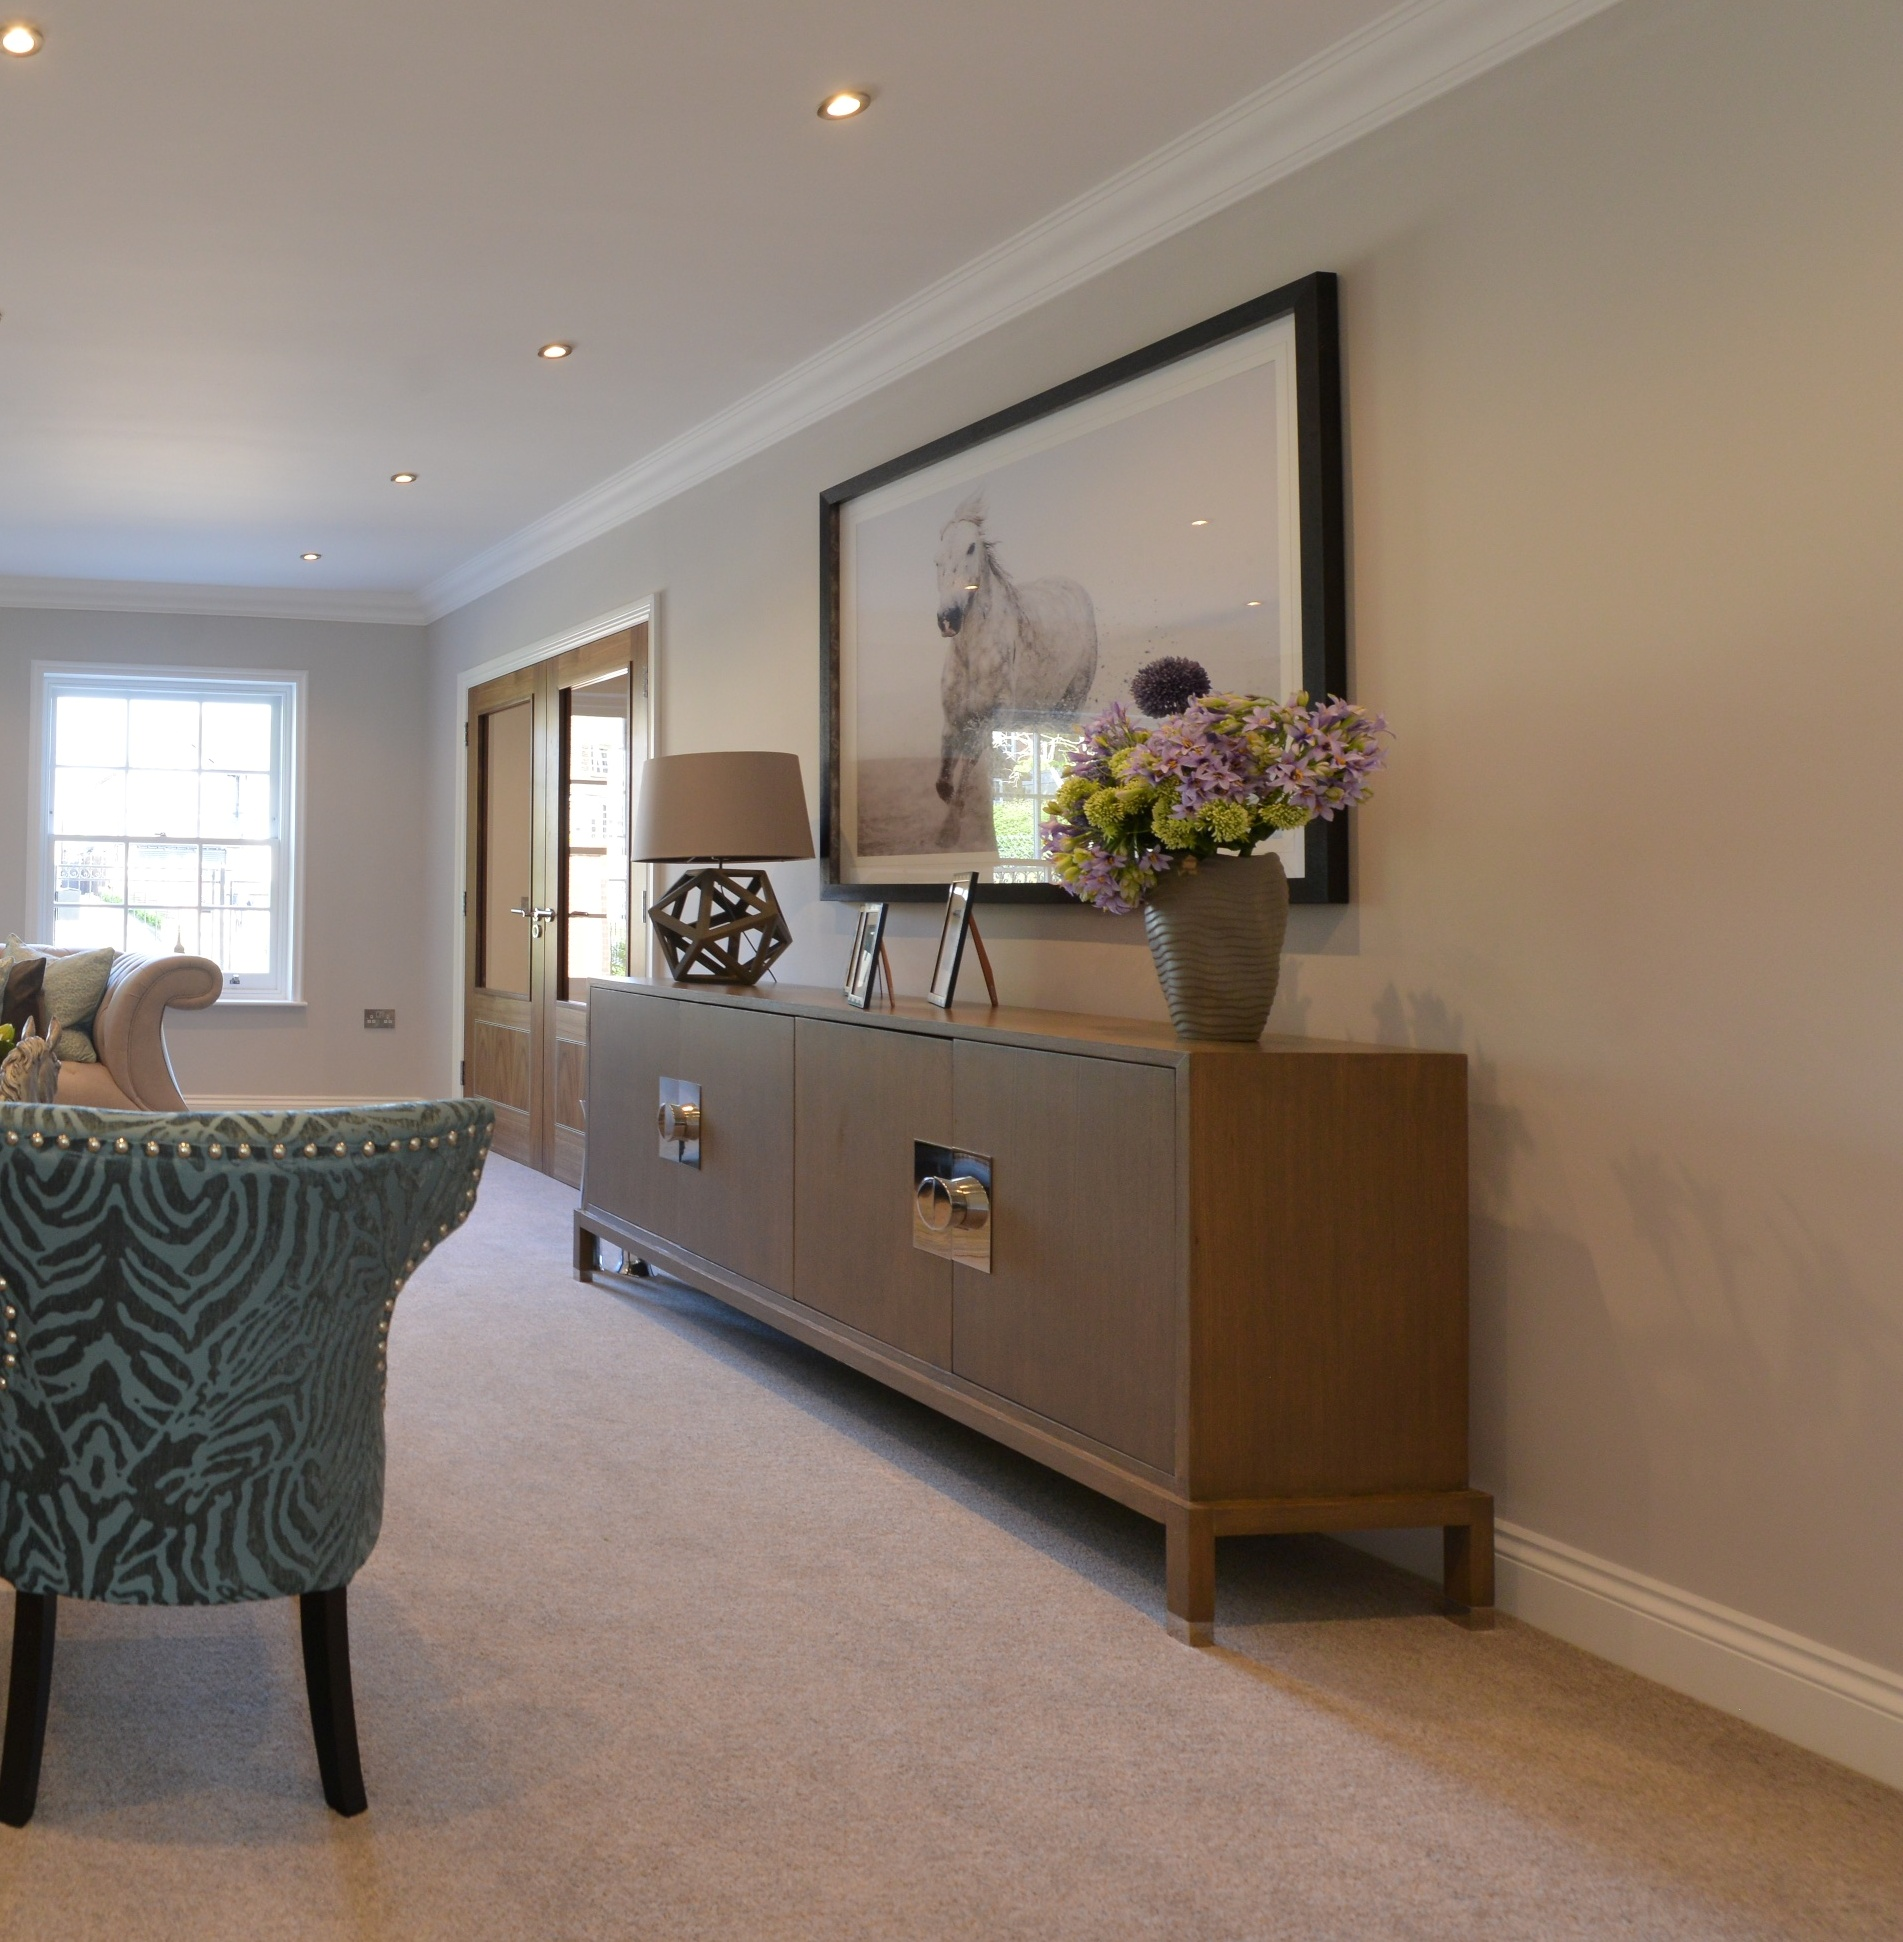 House in Chigwell 4.jpg